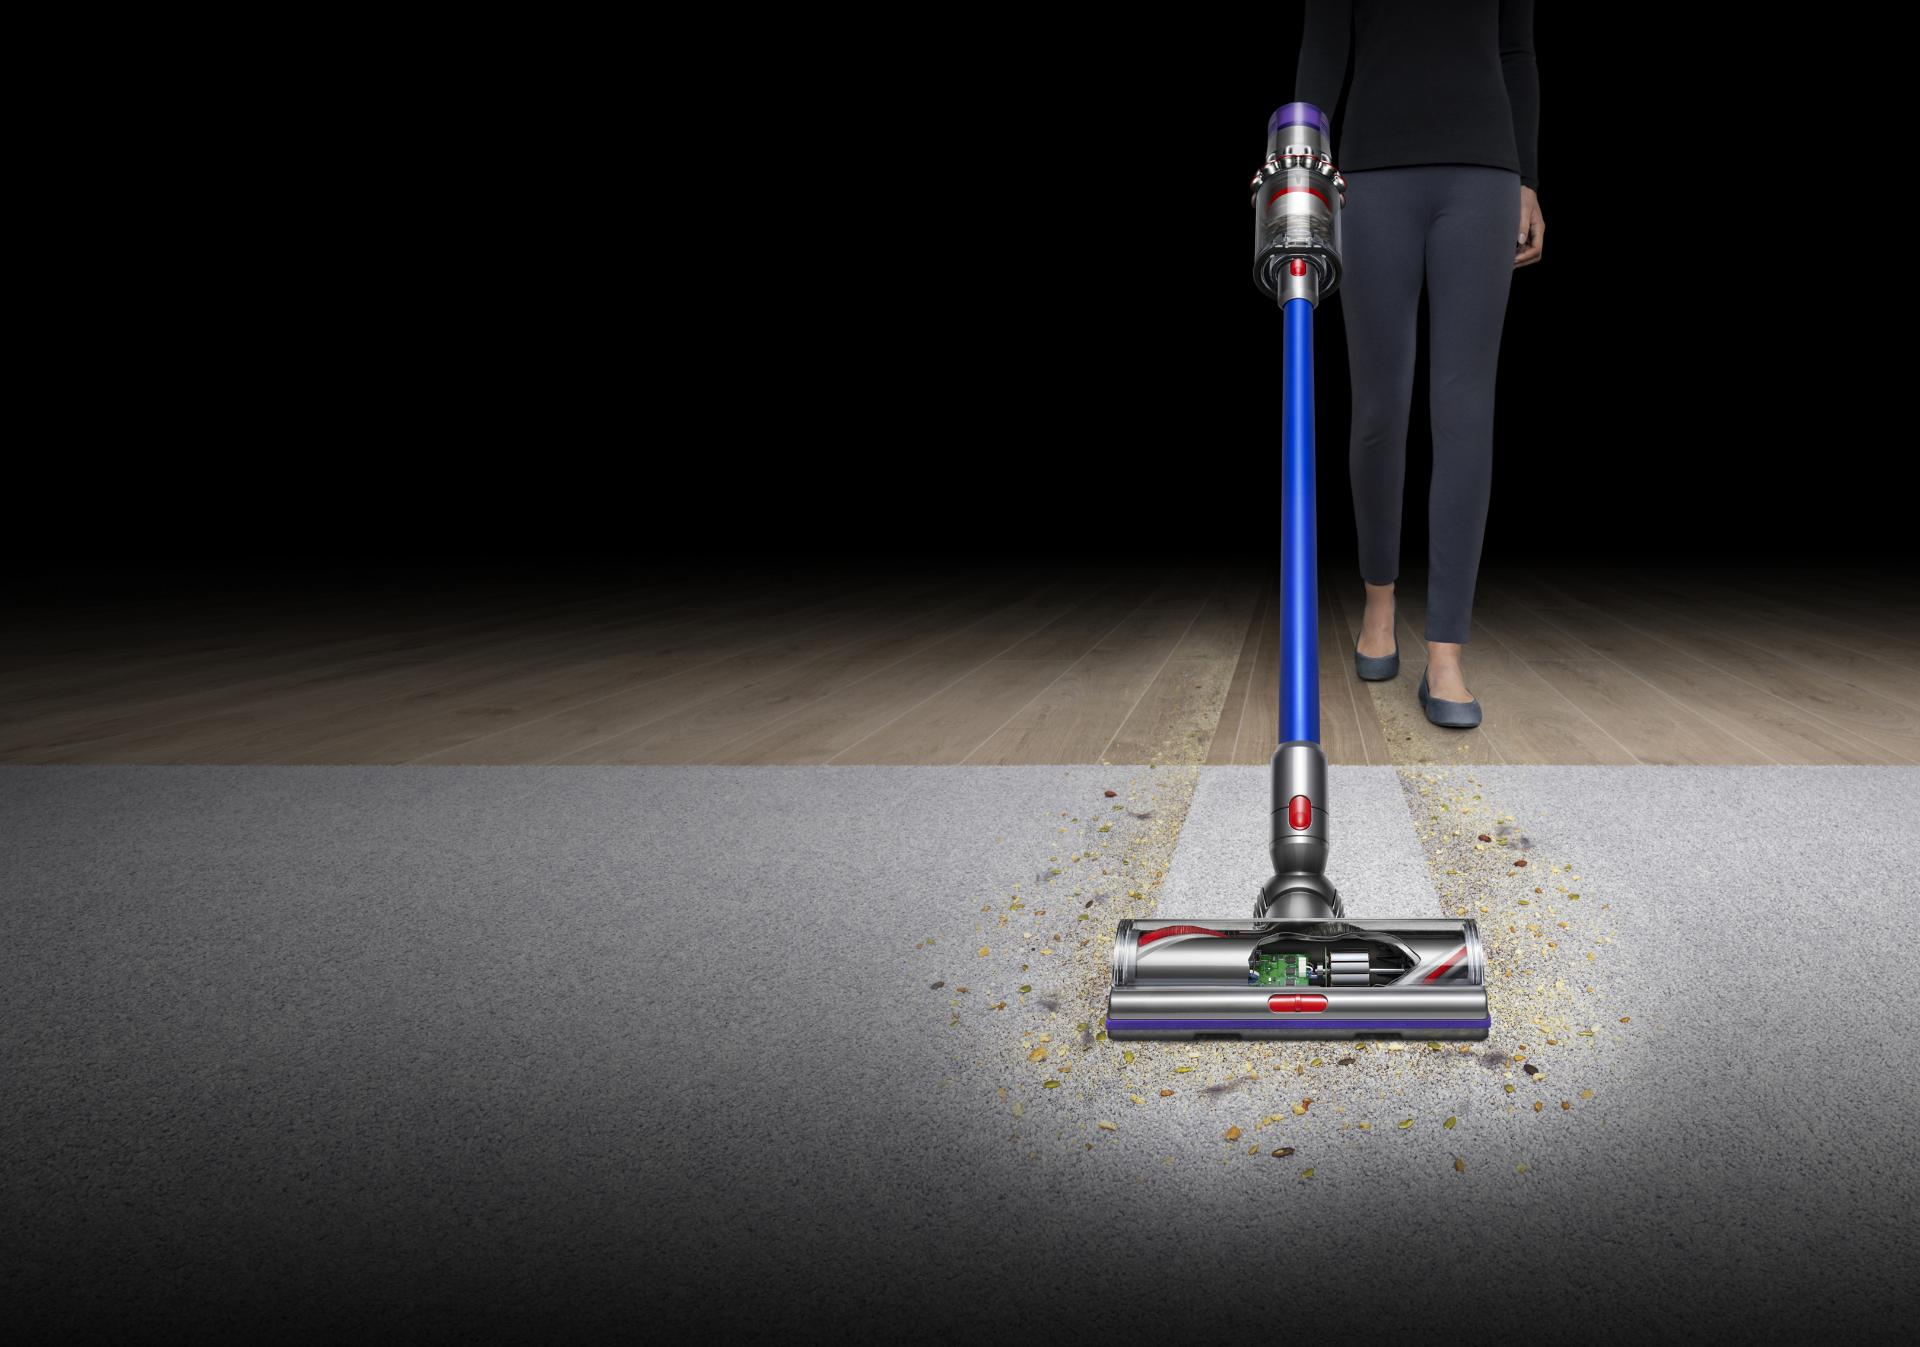 Front view of Dyson V11™ vacuum on carpet